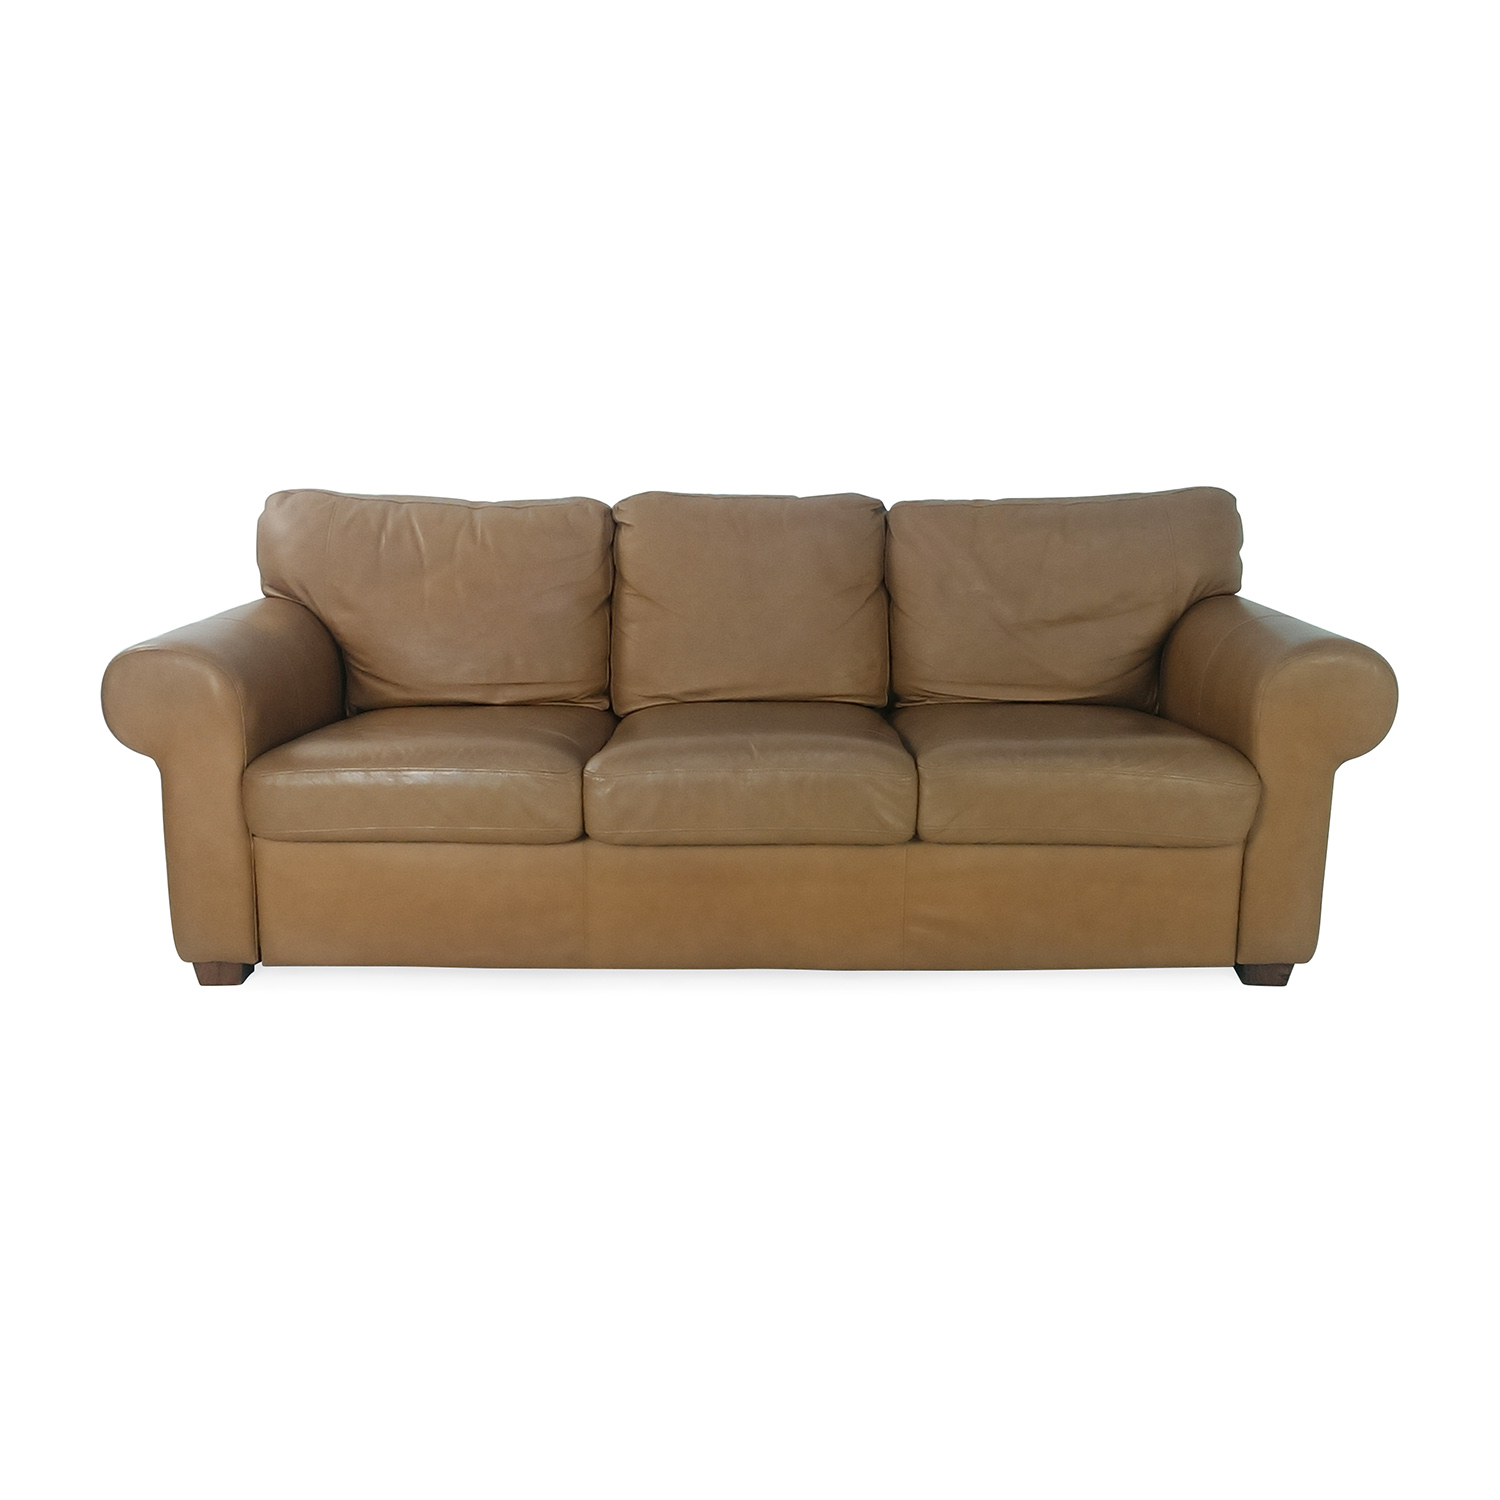 crate and barrel leather sofa bed simplicity sofas locations 89 off george smith classic english style